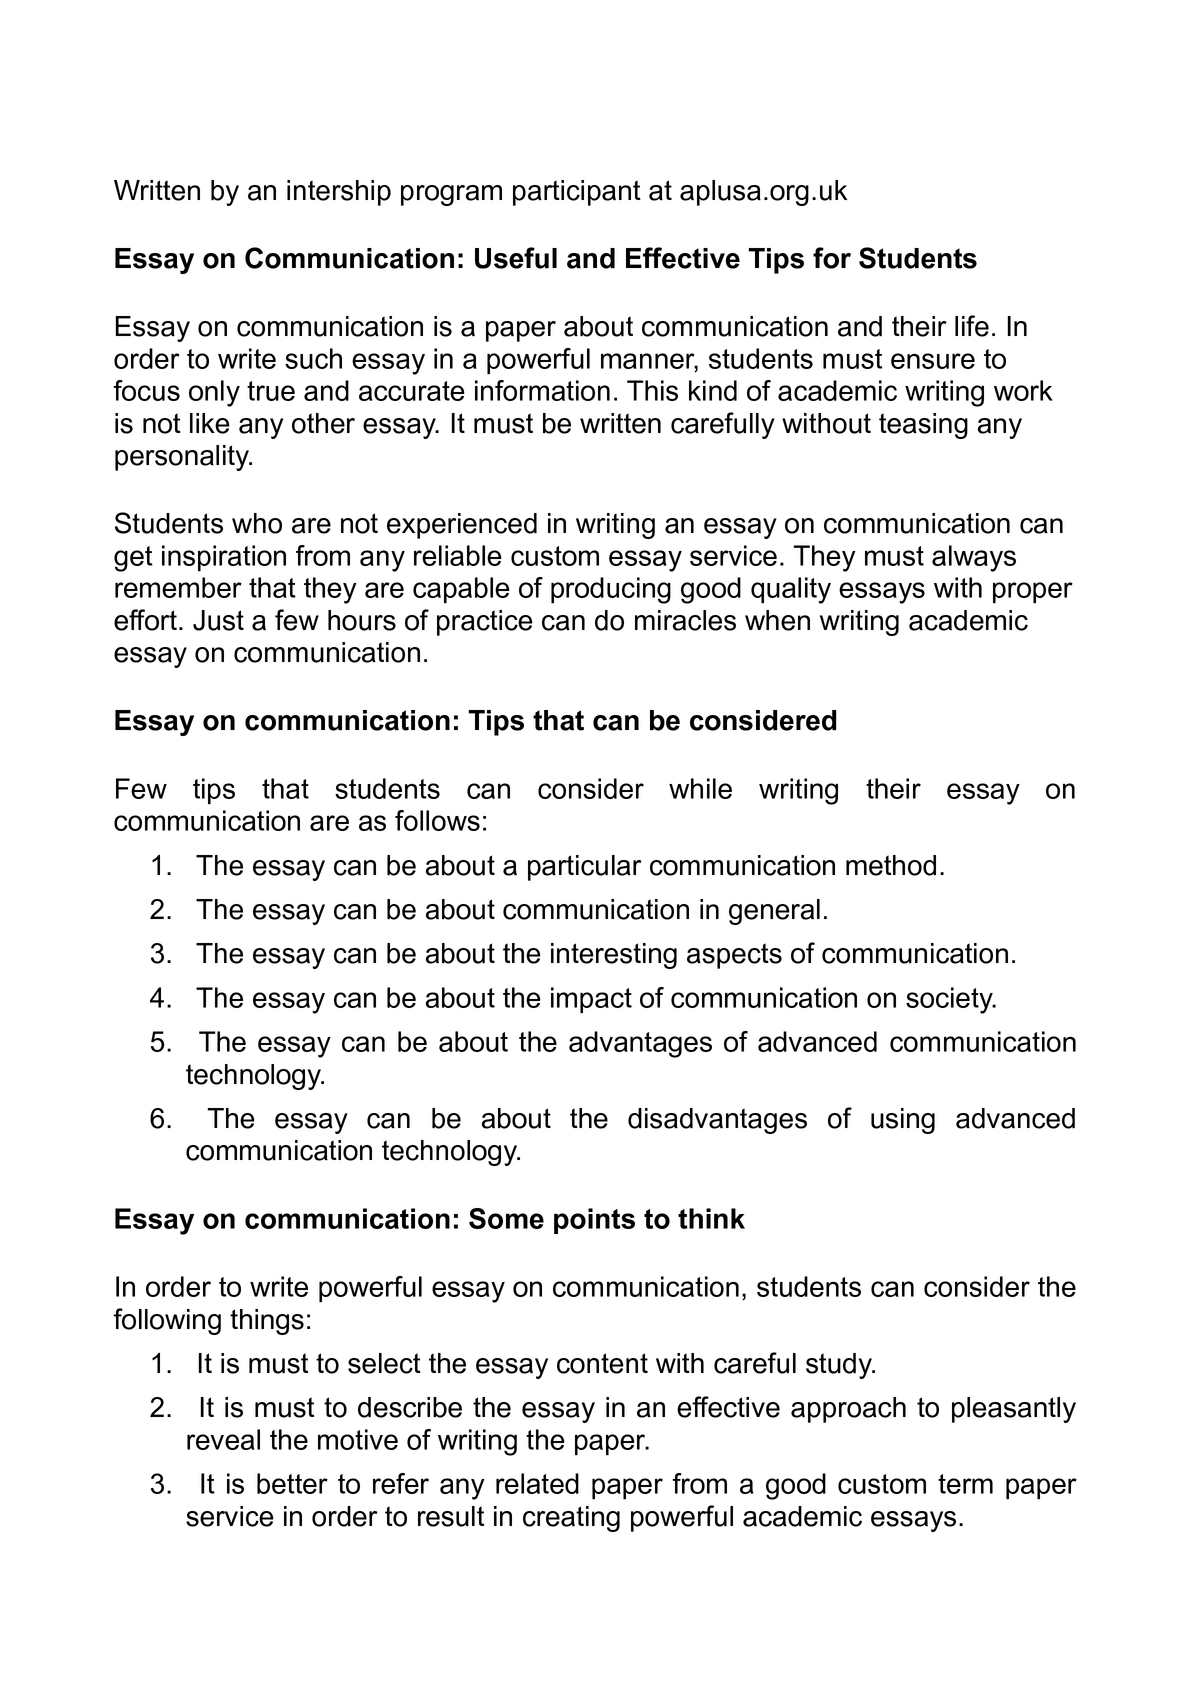 business communications essay Business communication topics for research paper communication is essential in the day to day operations of a business it varies at the various organizational levels and depends on the communication culture adopted by the organization.